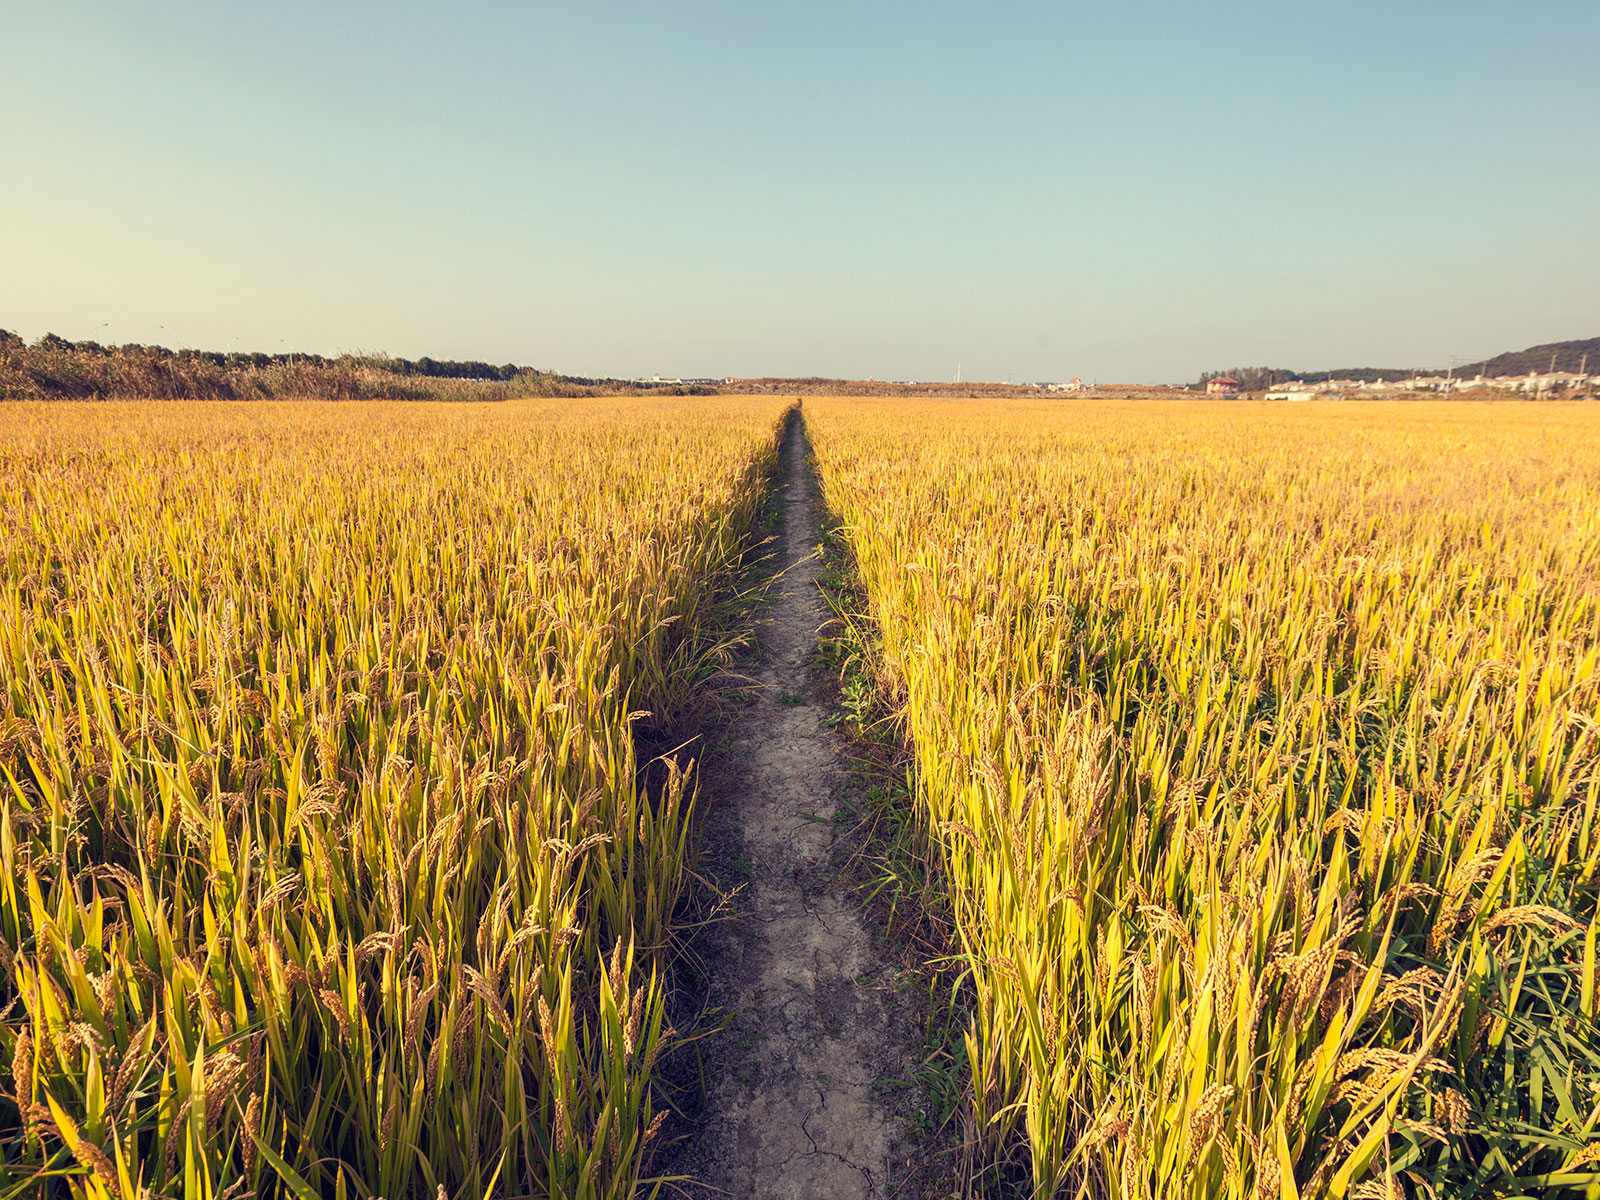 co2 impacts rice crops and other crops